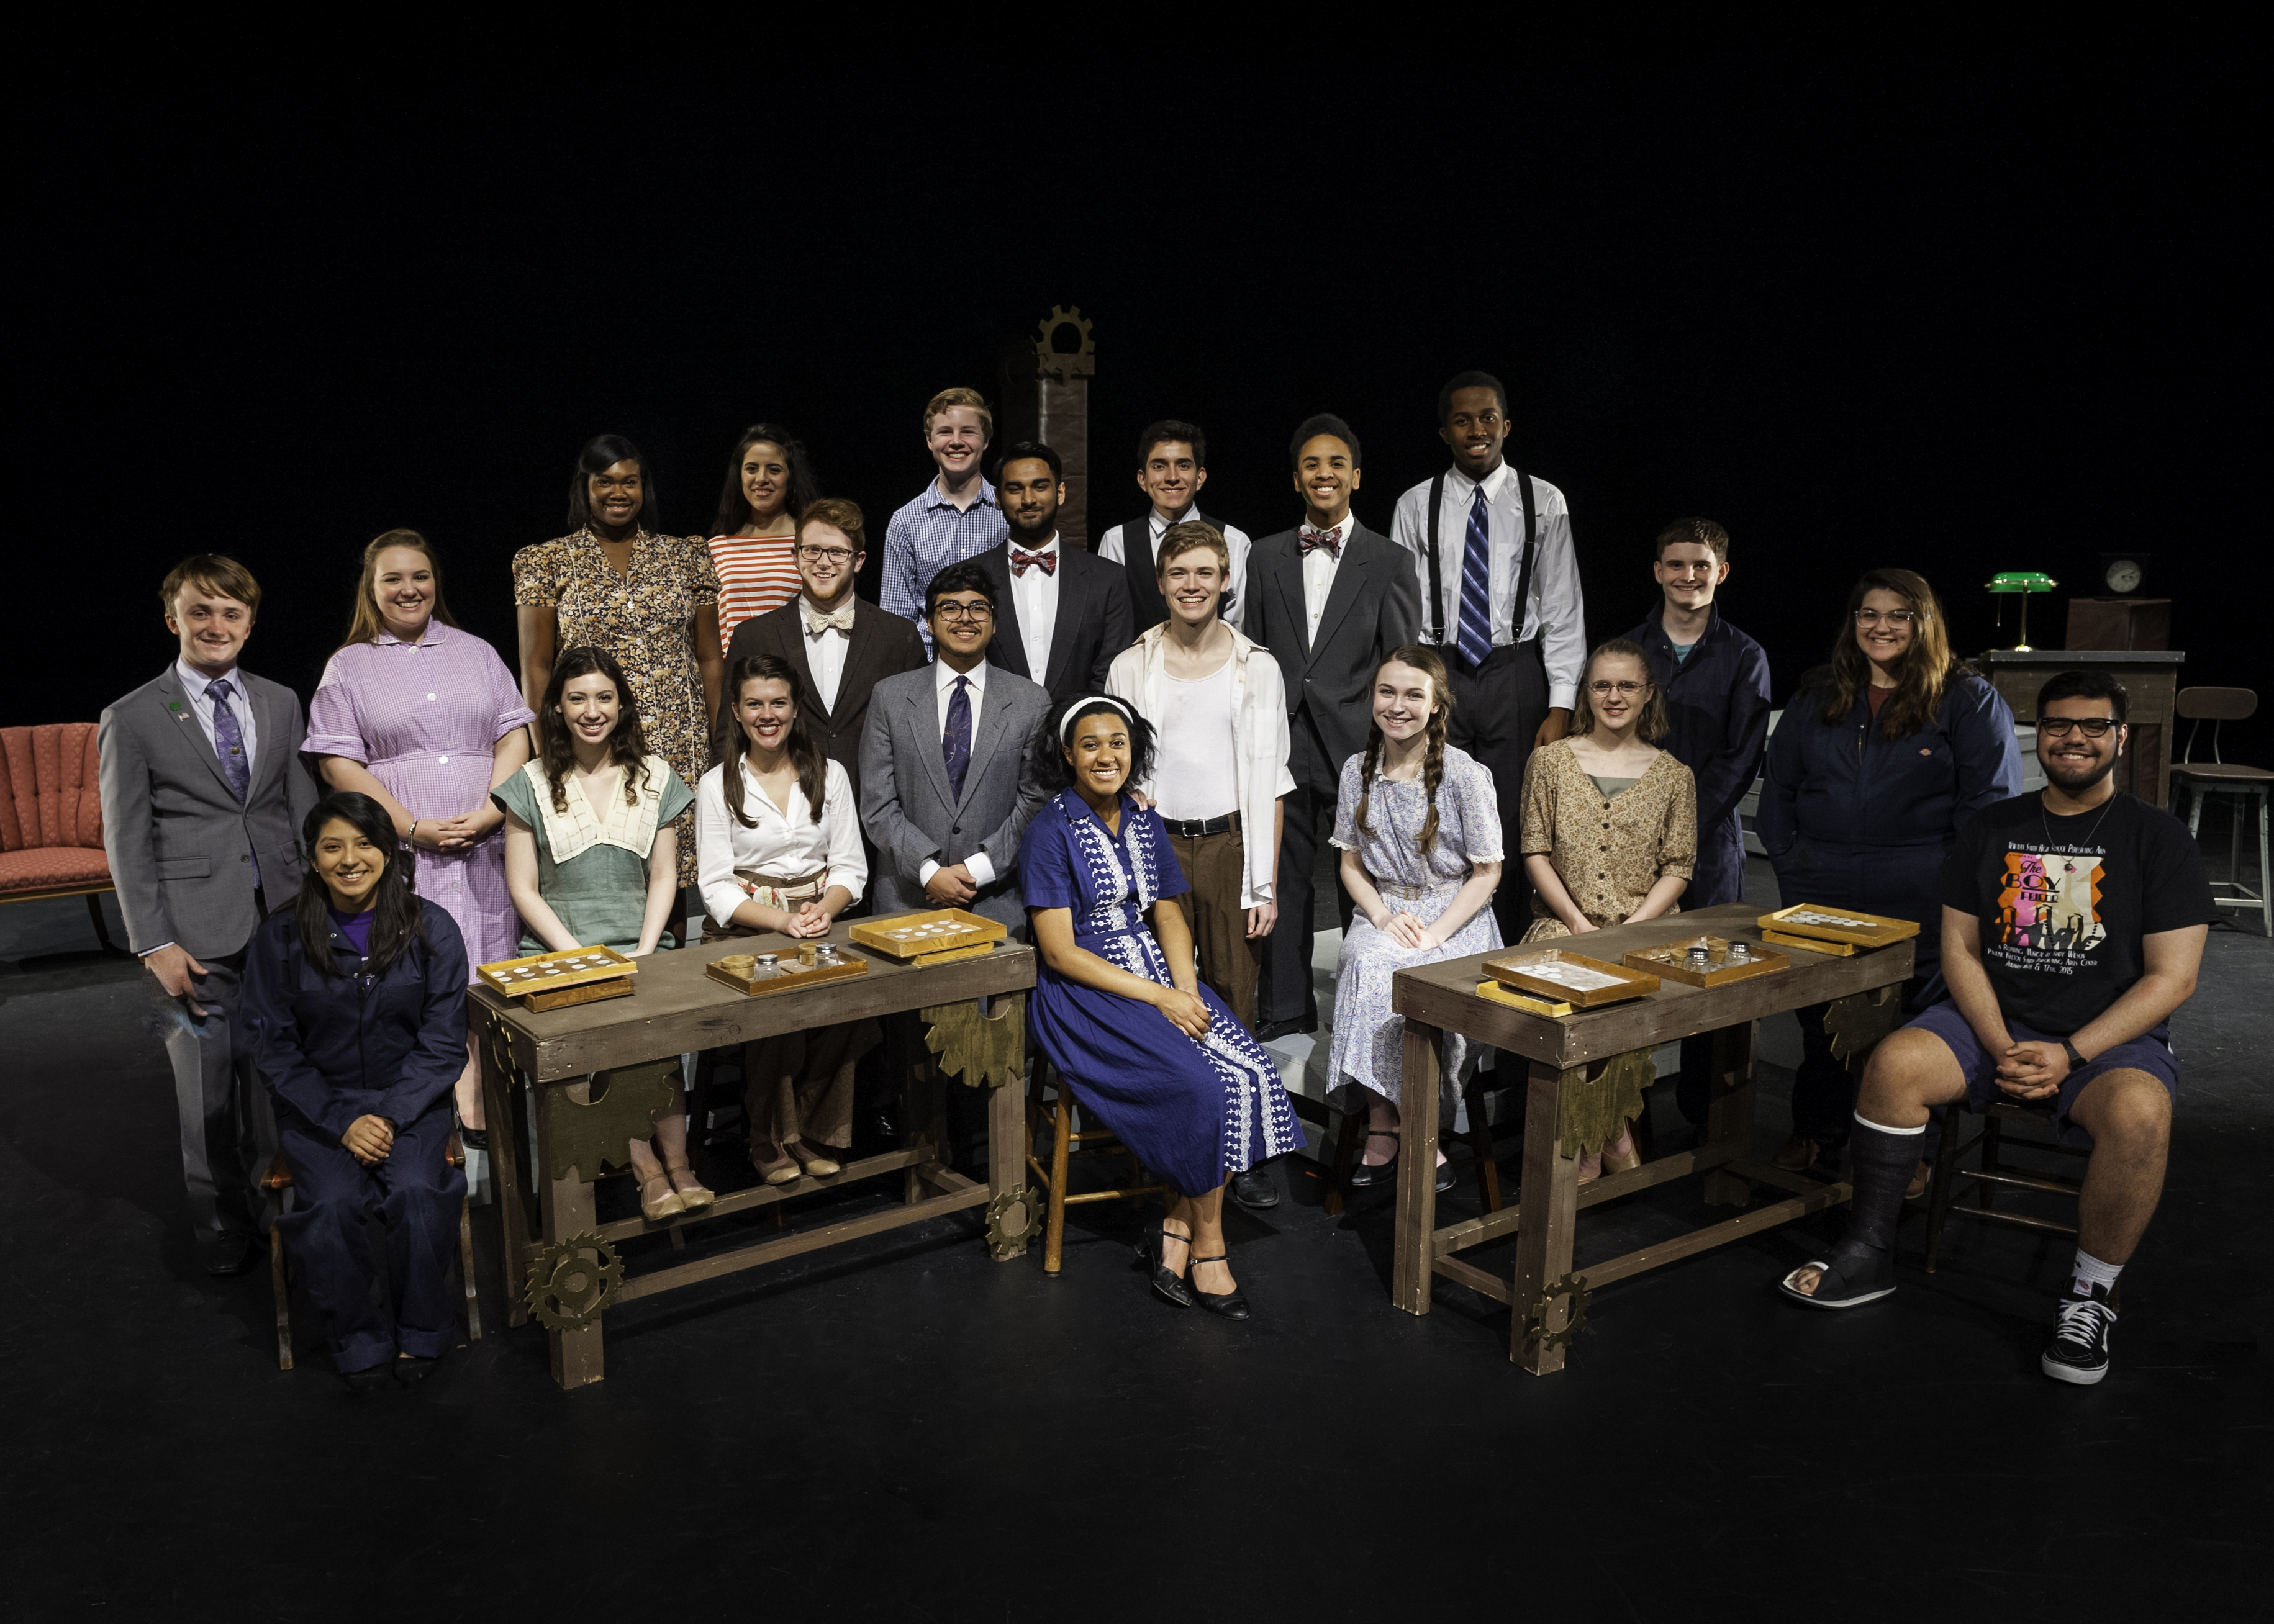 These Shining Lives Cast and Crew